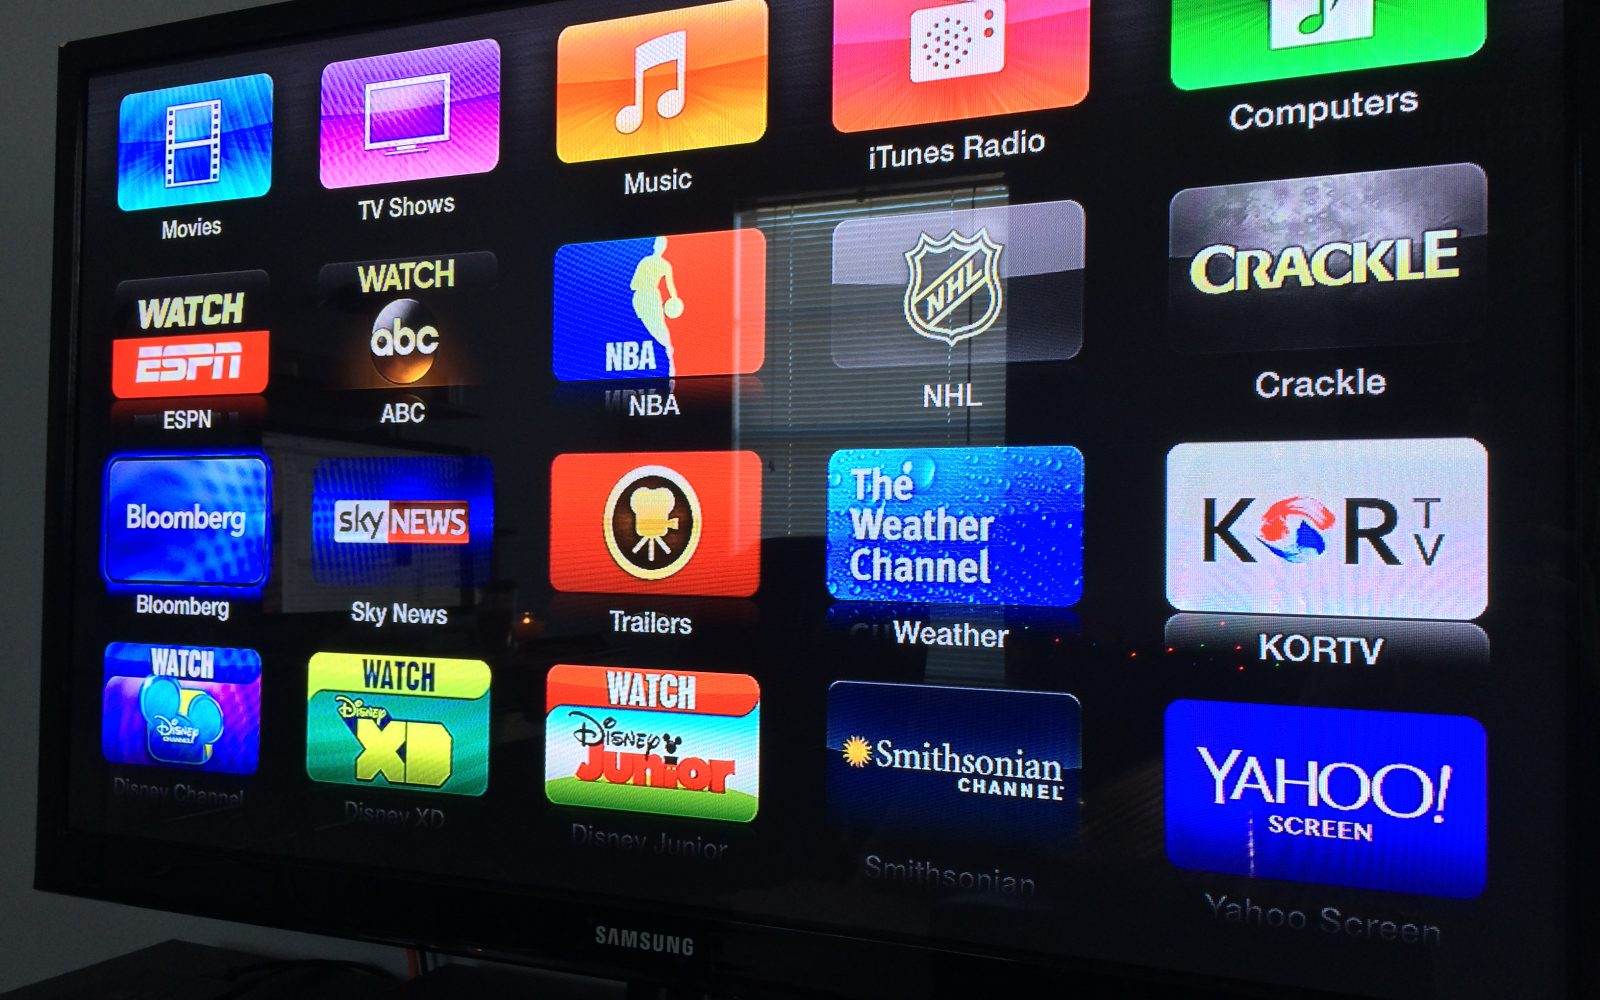 Apple TV adds Crackle, Watch ABC, and KORTV channels in